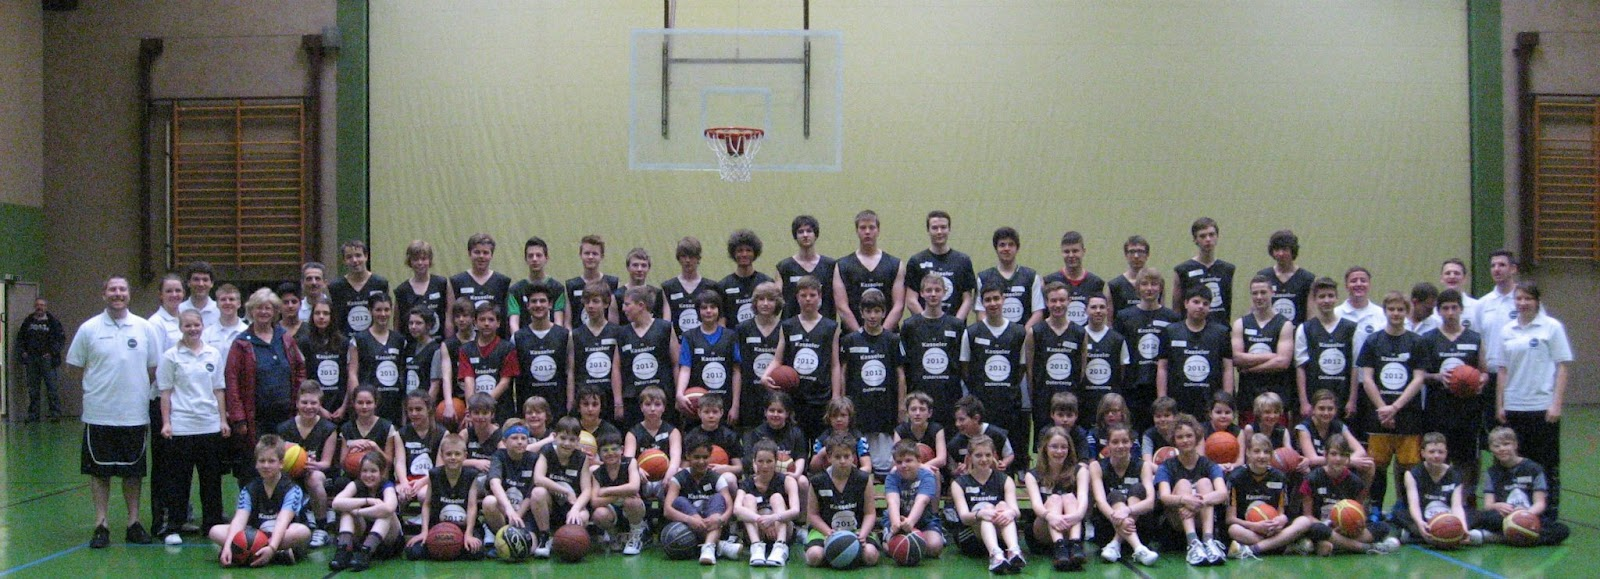 act kassel basketball